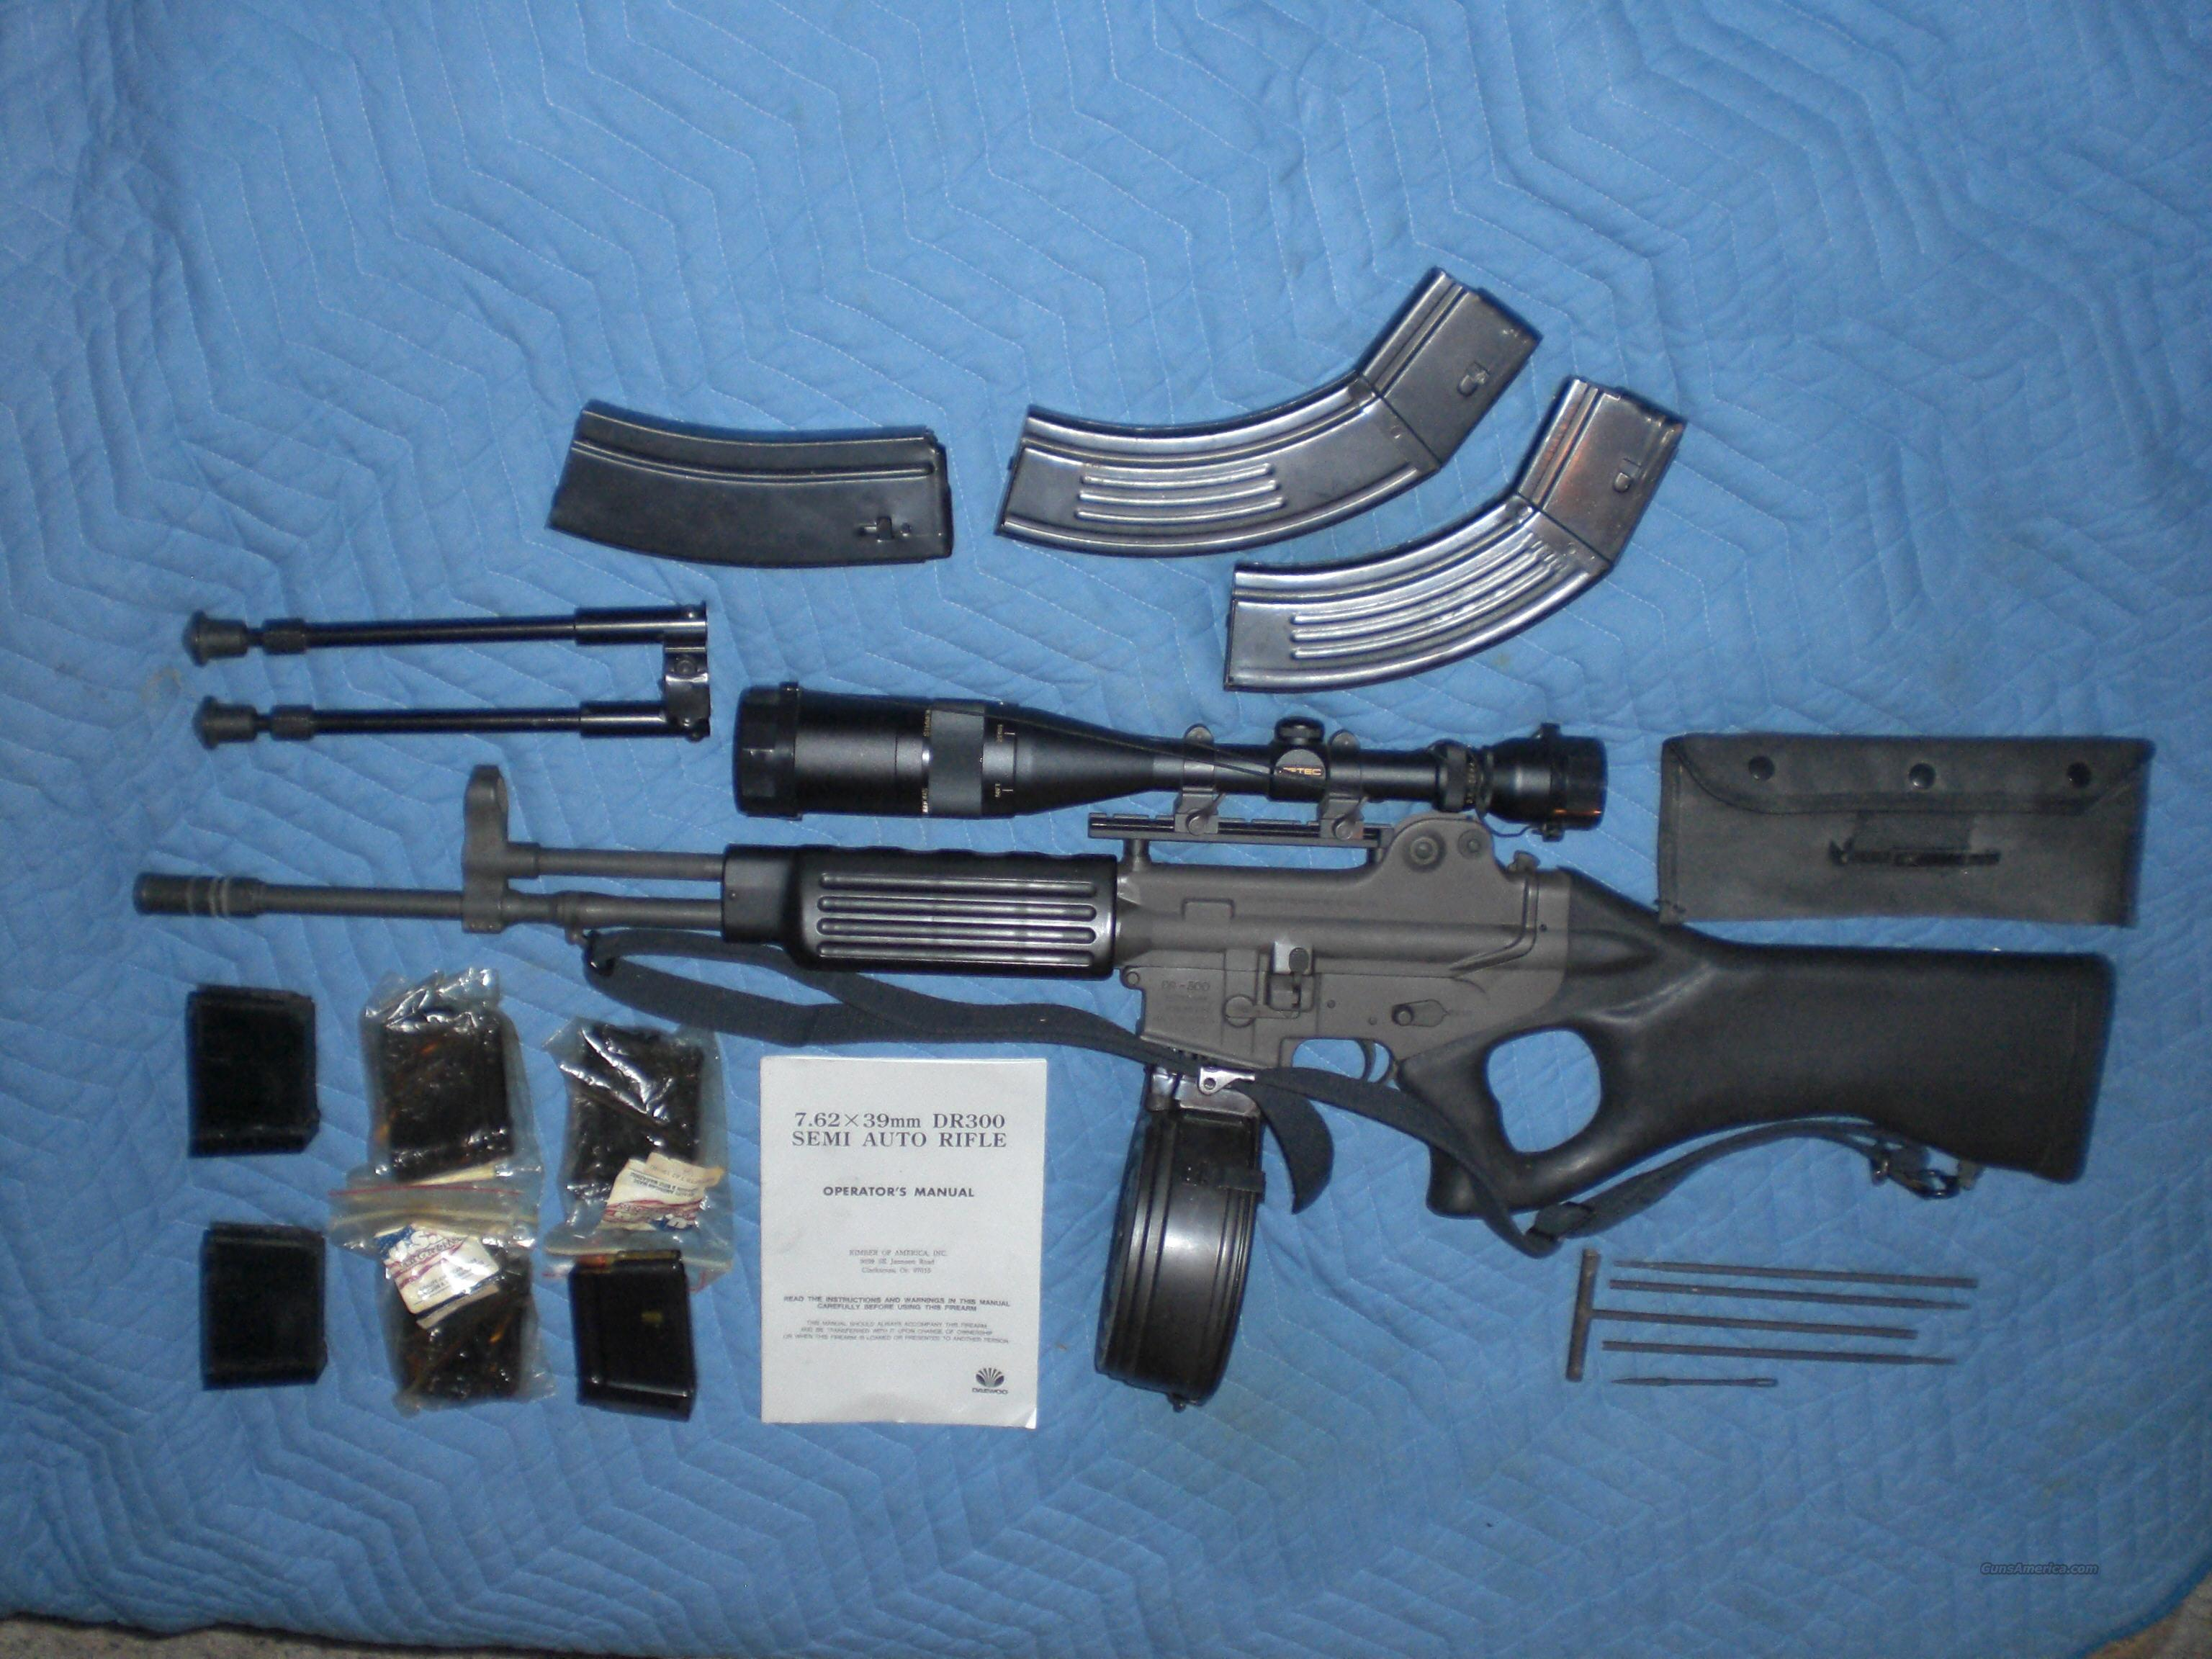 Daewoo DR 300 (7.62x39mm) w/ 90-rd Drum for sale